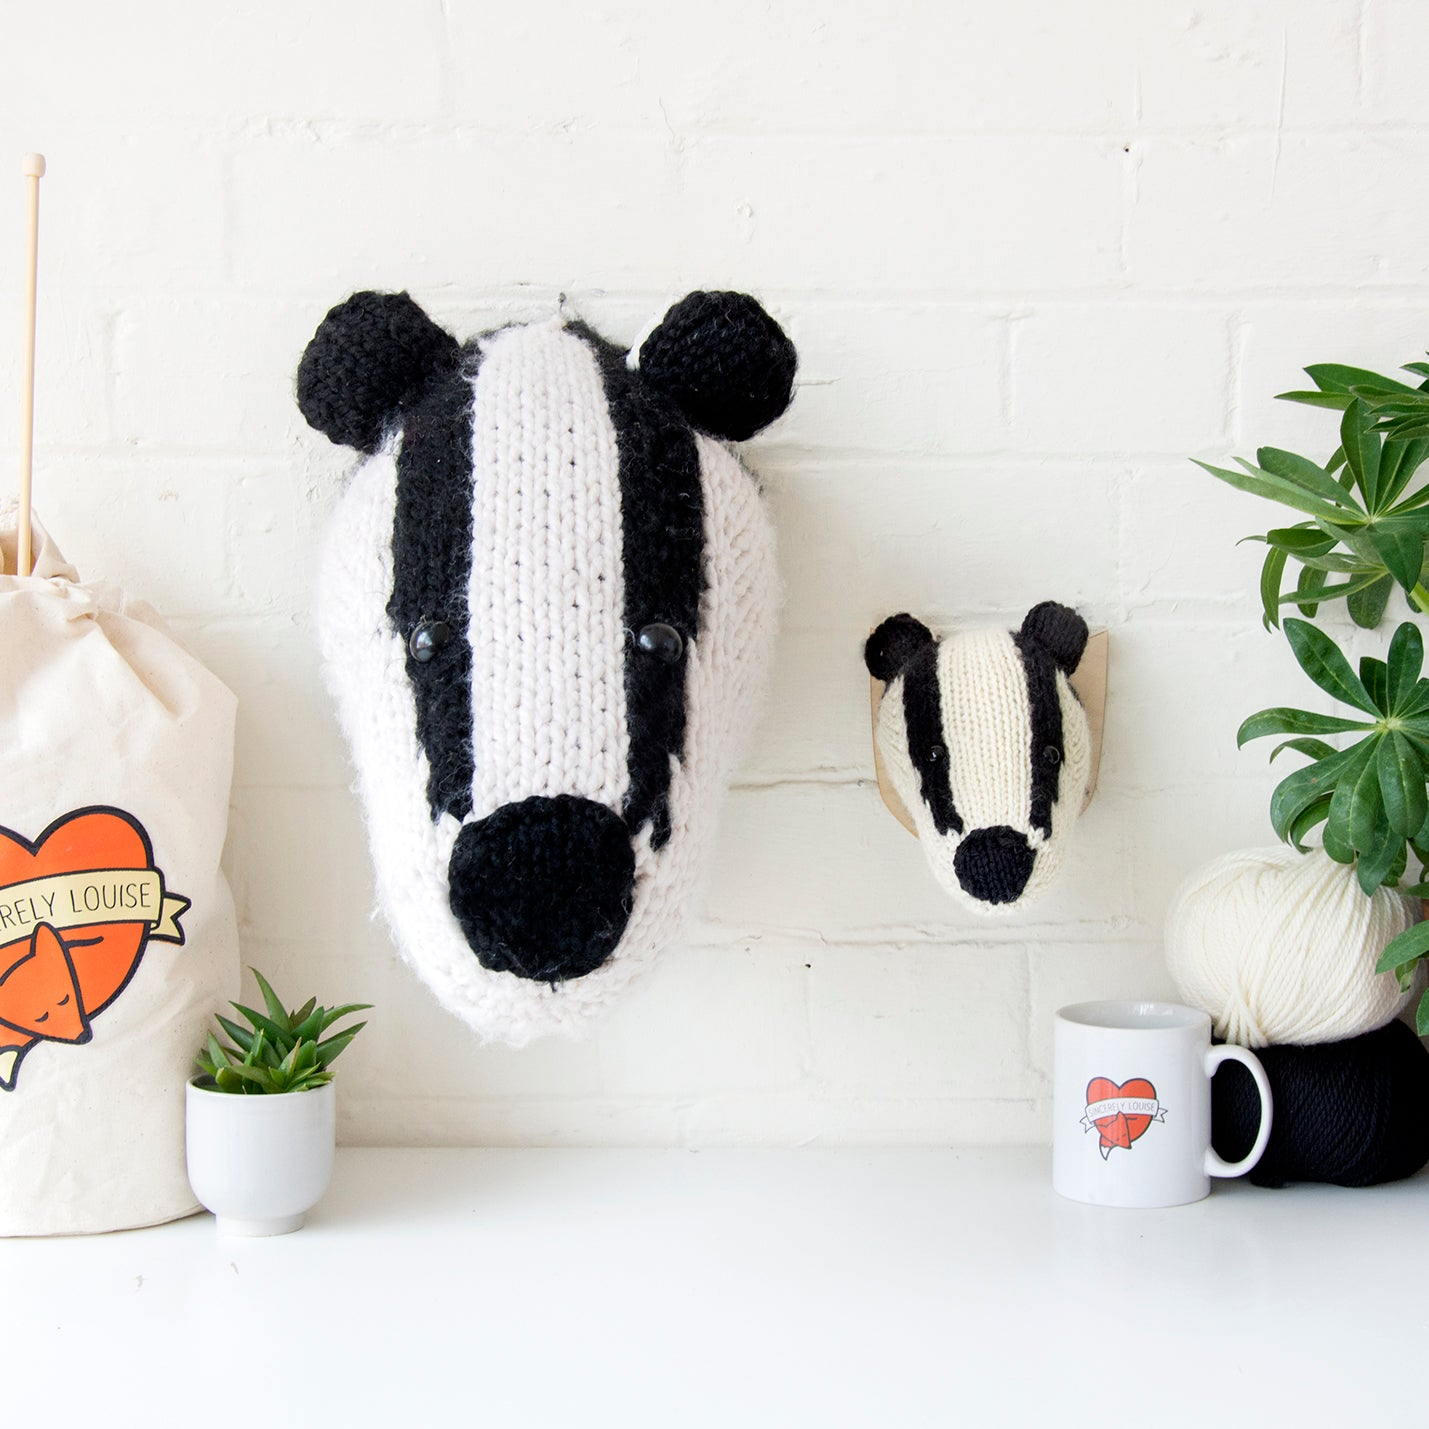 Badger Head Knitting Kit